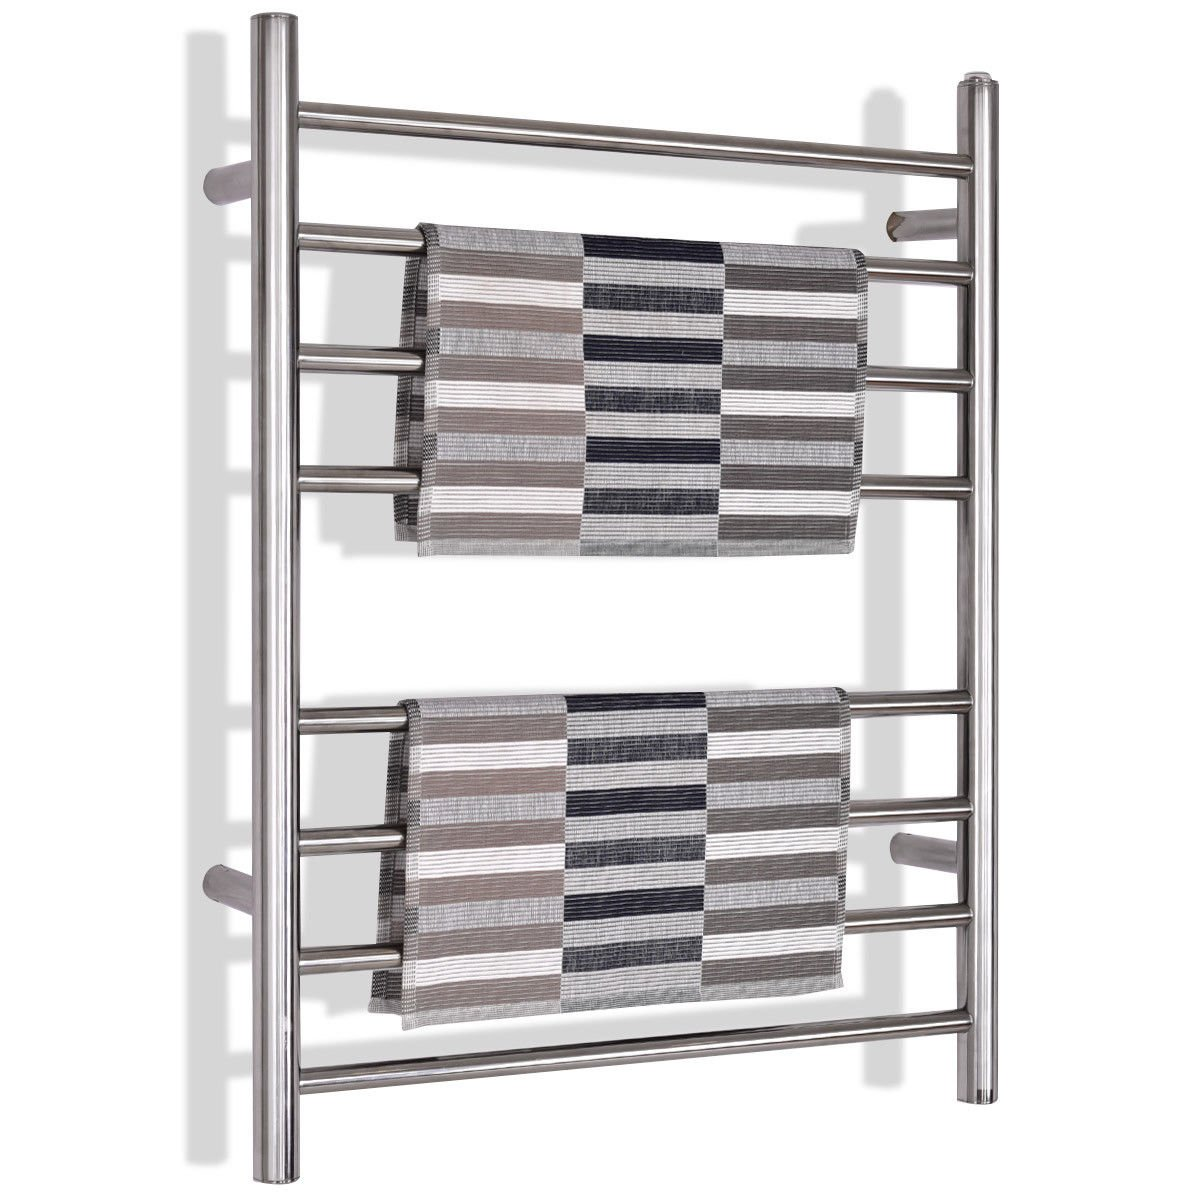 Tangkula 5-Bar Bath Towel Warmer Free Standing & Wall Mounted 36' Towel Heater for Home Bathroom Stable Metal Frame Space Saving Towel Hanger 100W Portable Drying Rack (23' L x 13.0' W x 36' H)